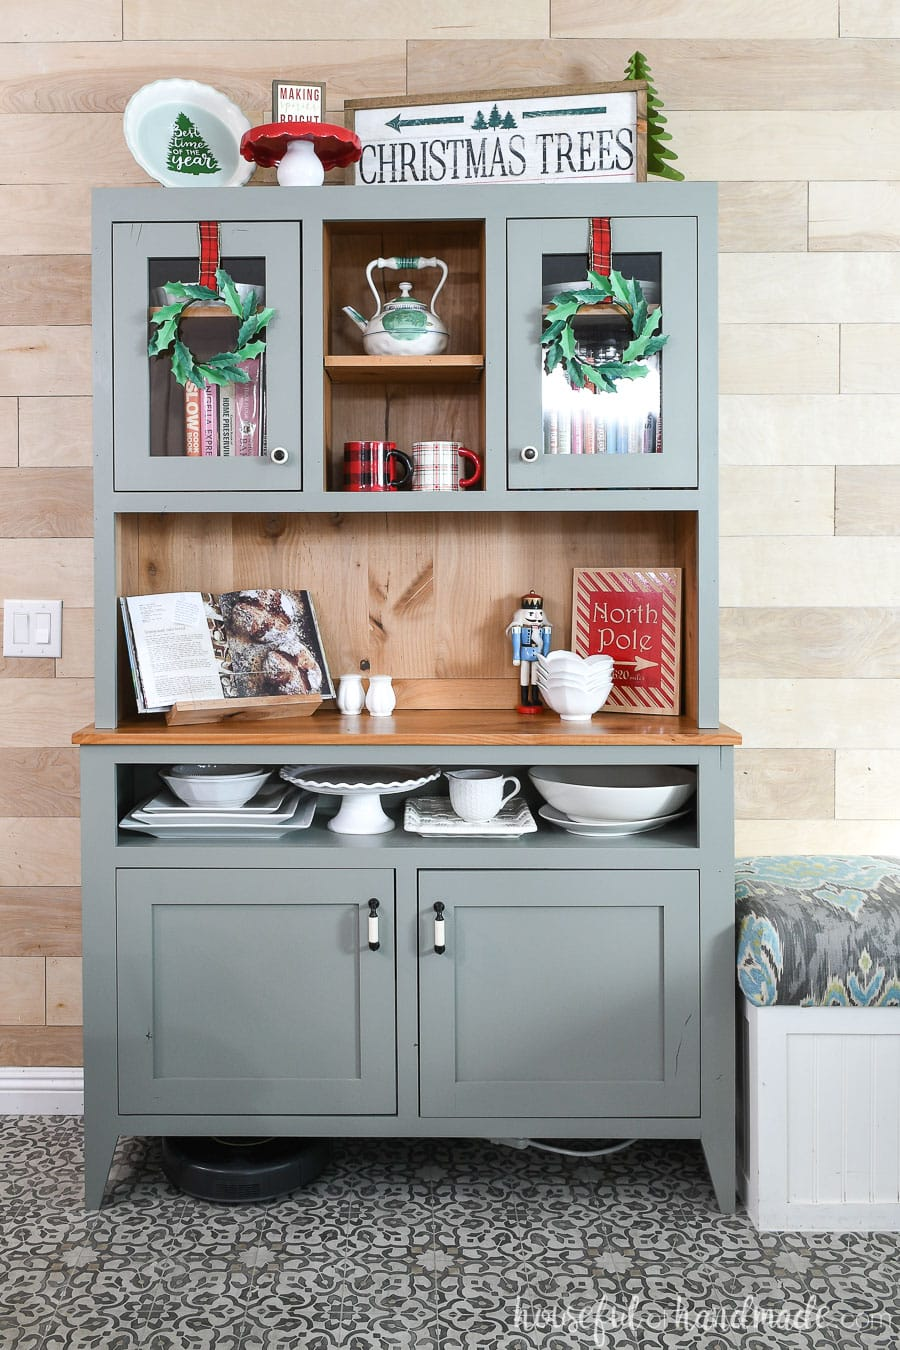 Rustic modern hutch decorated with Christmas decor and paper holly wreaths hanging on the hutch doors.